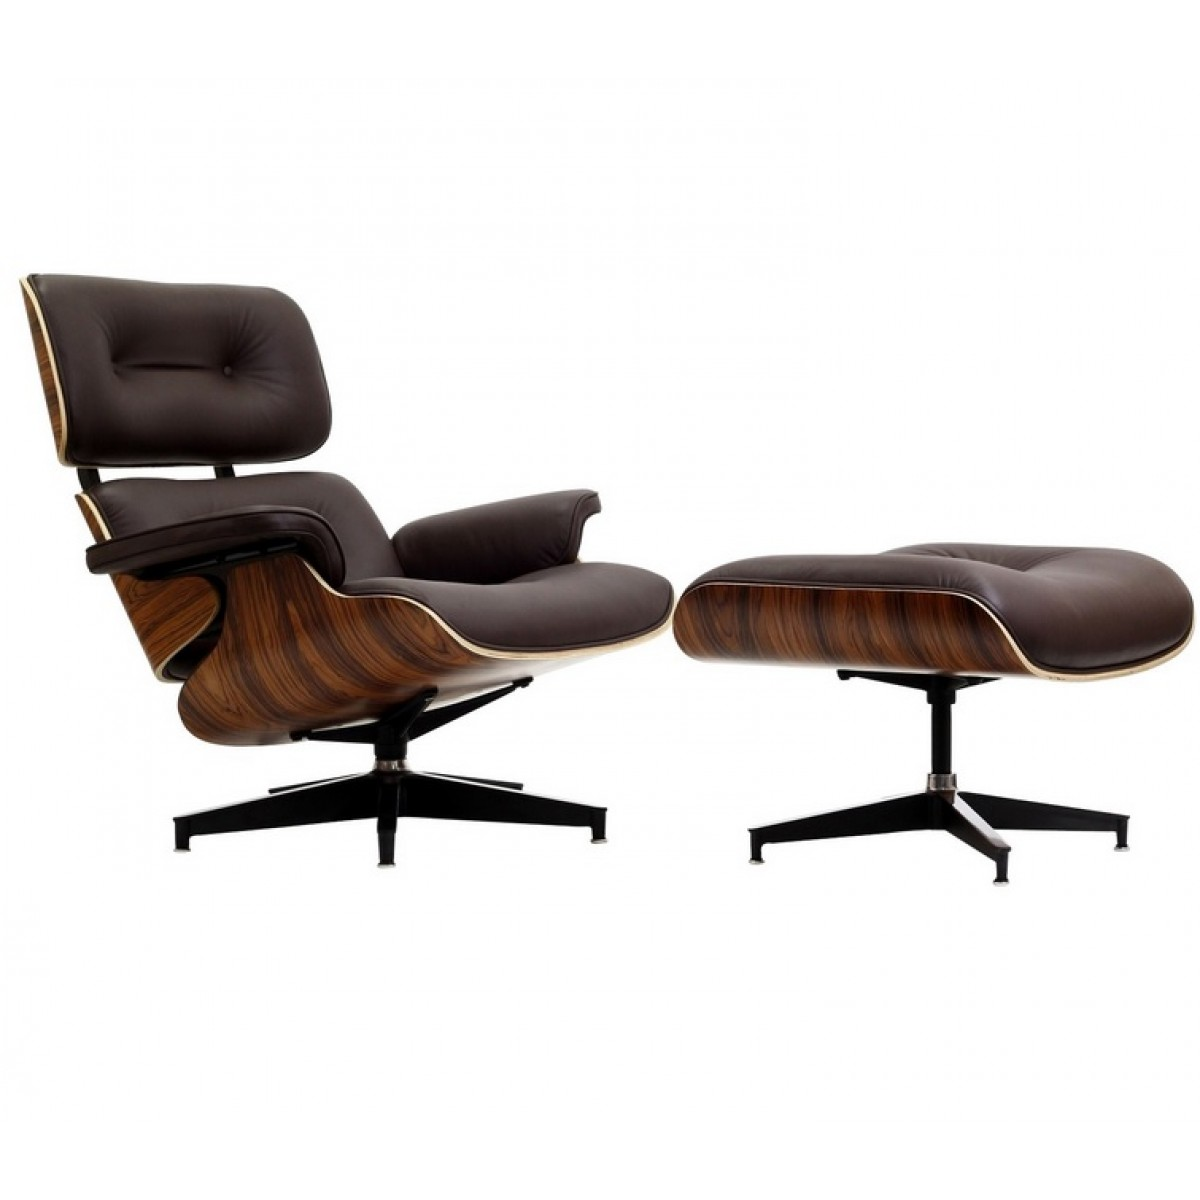 Eames style lounge chair and ottoman brown leather walnut for Lounge chair replica erfahrungen